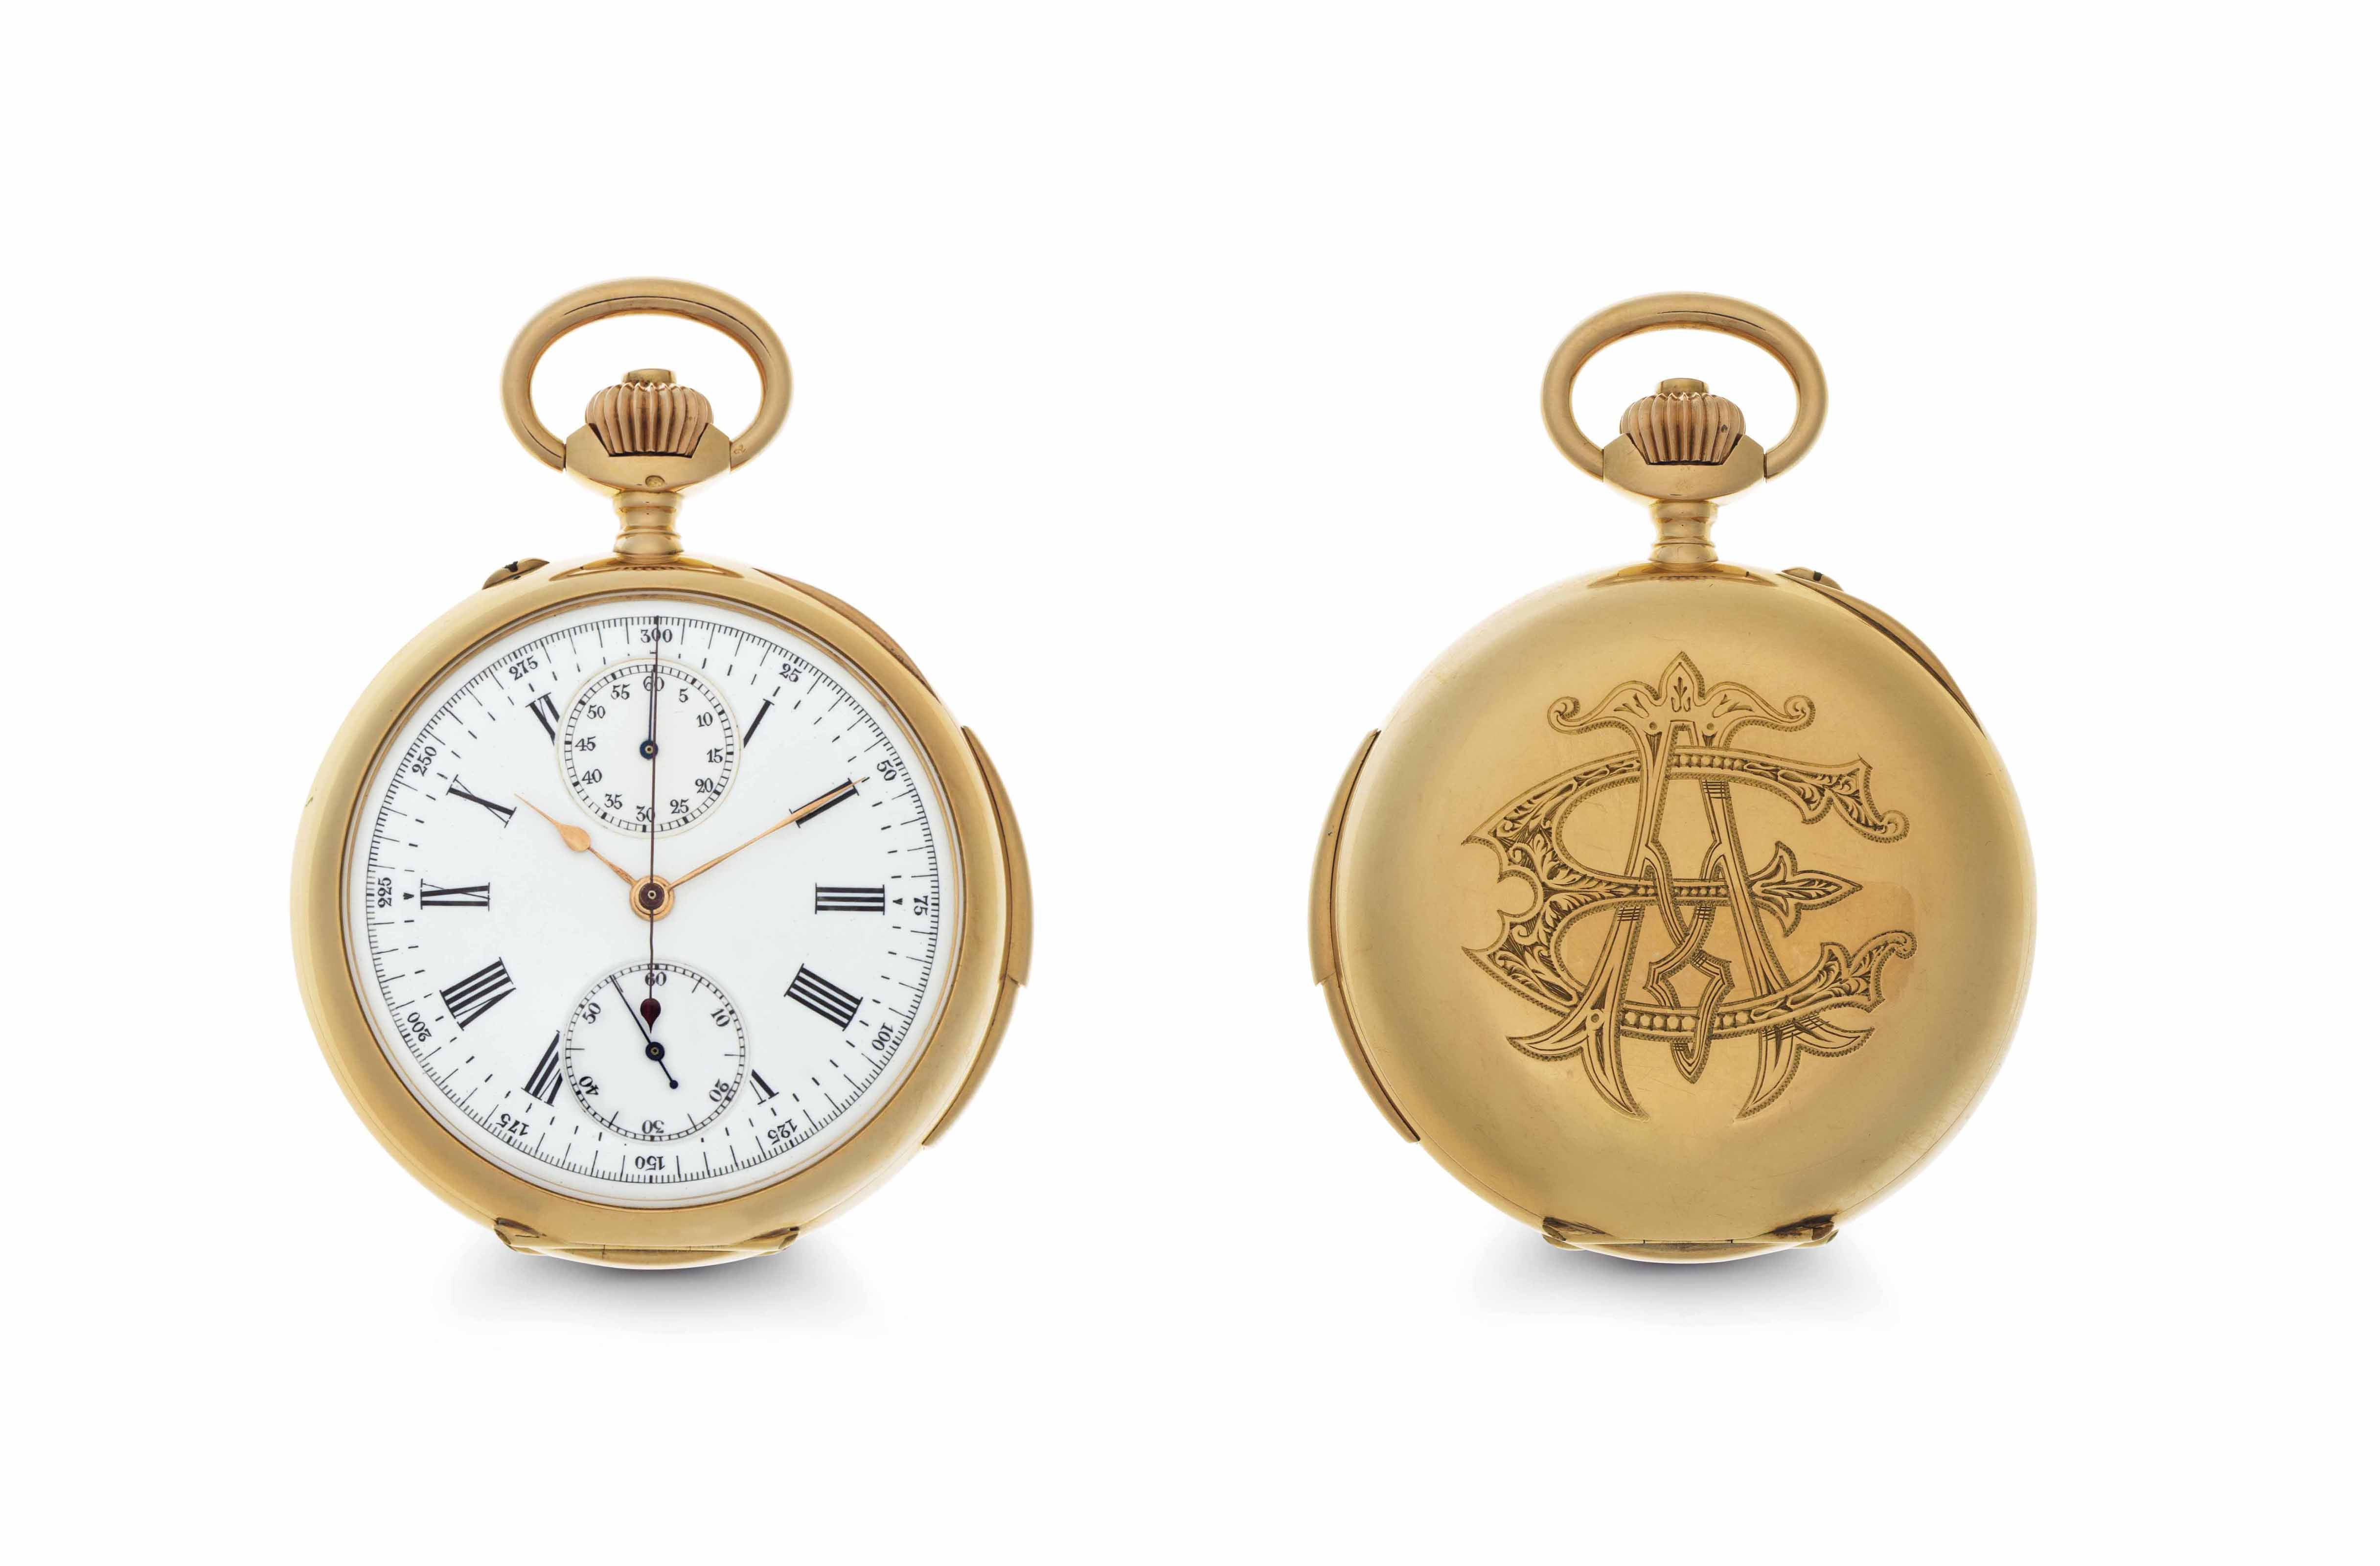 LeRoy. An 14k Pink Gold Minute Repeating Openface Chronograph Keyless Lever Pocket Watch